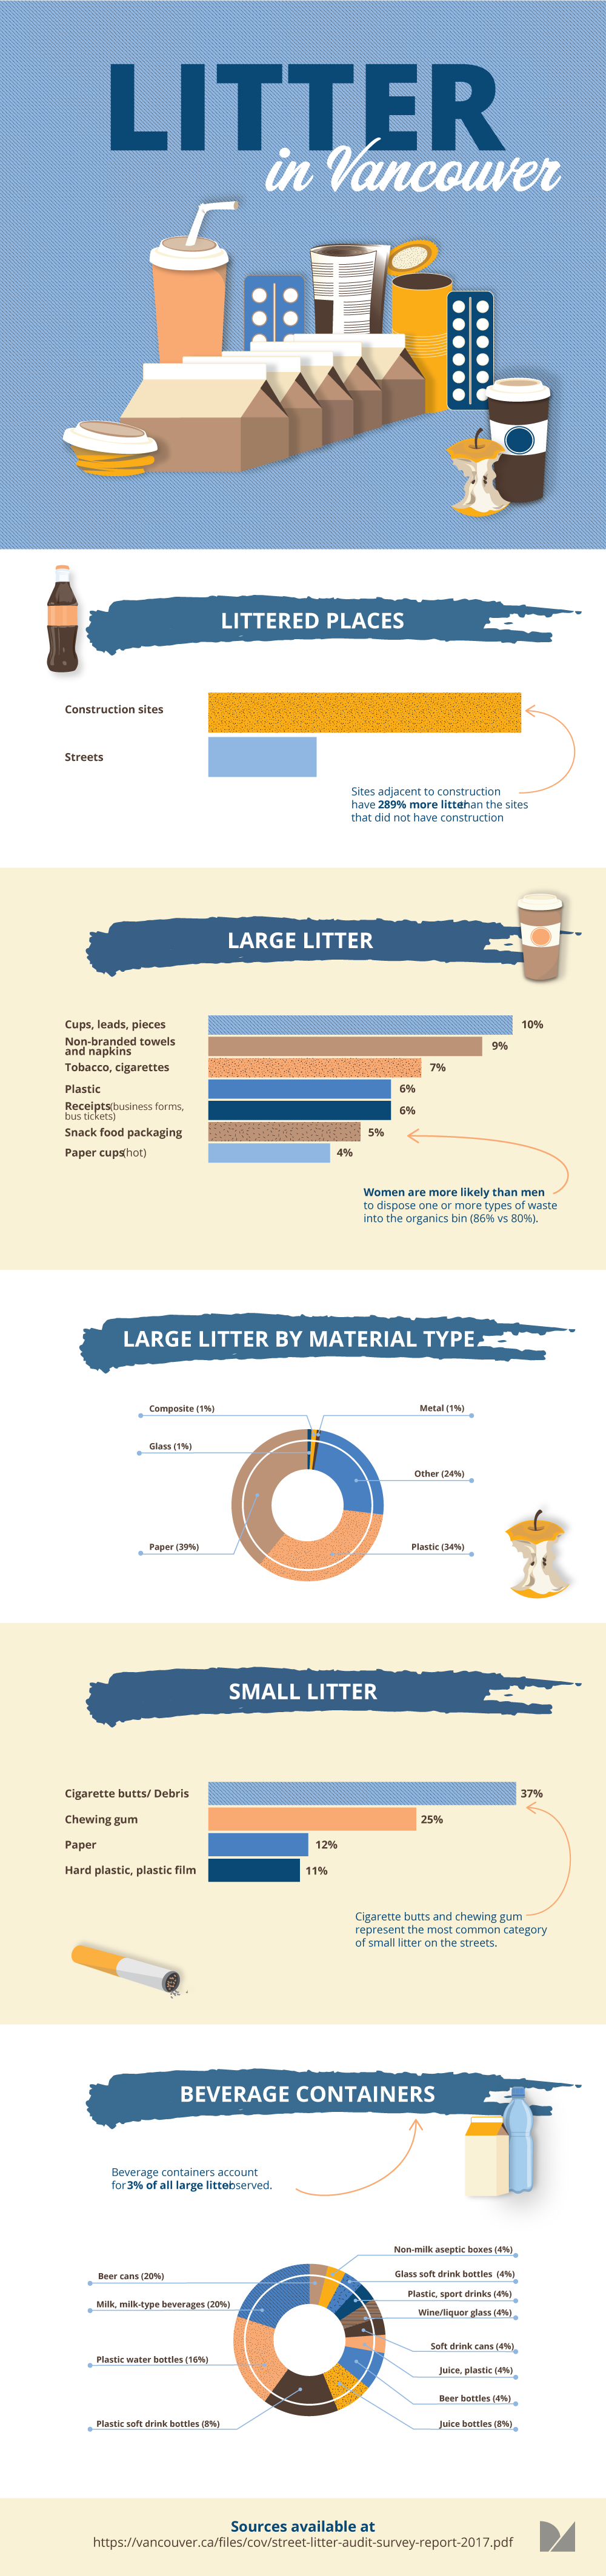 Litter infographics and statistics in Canada